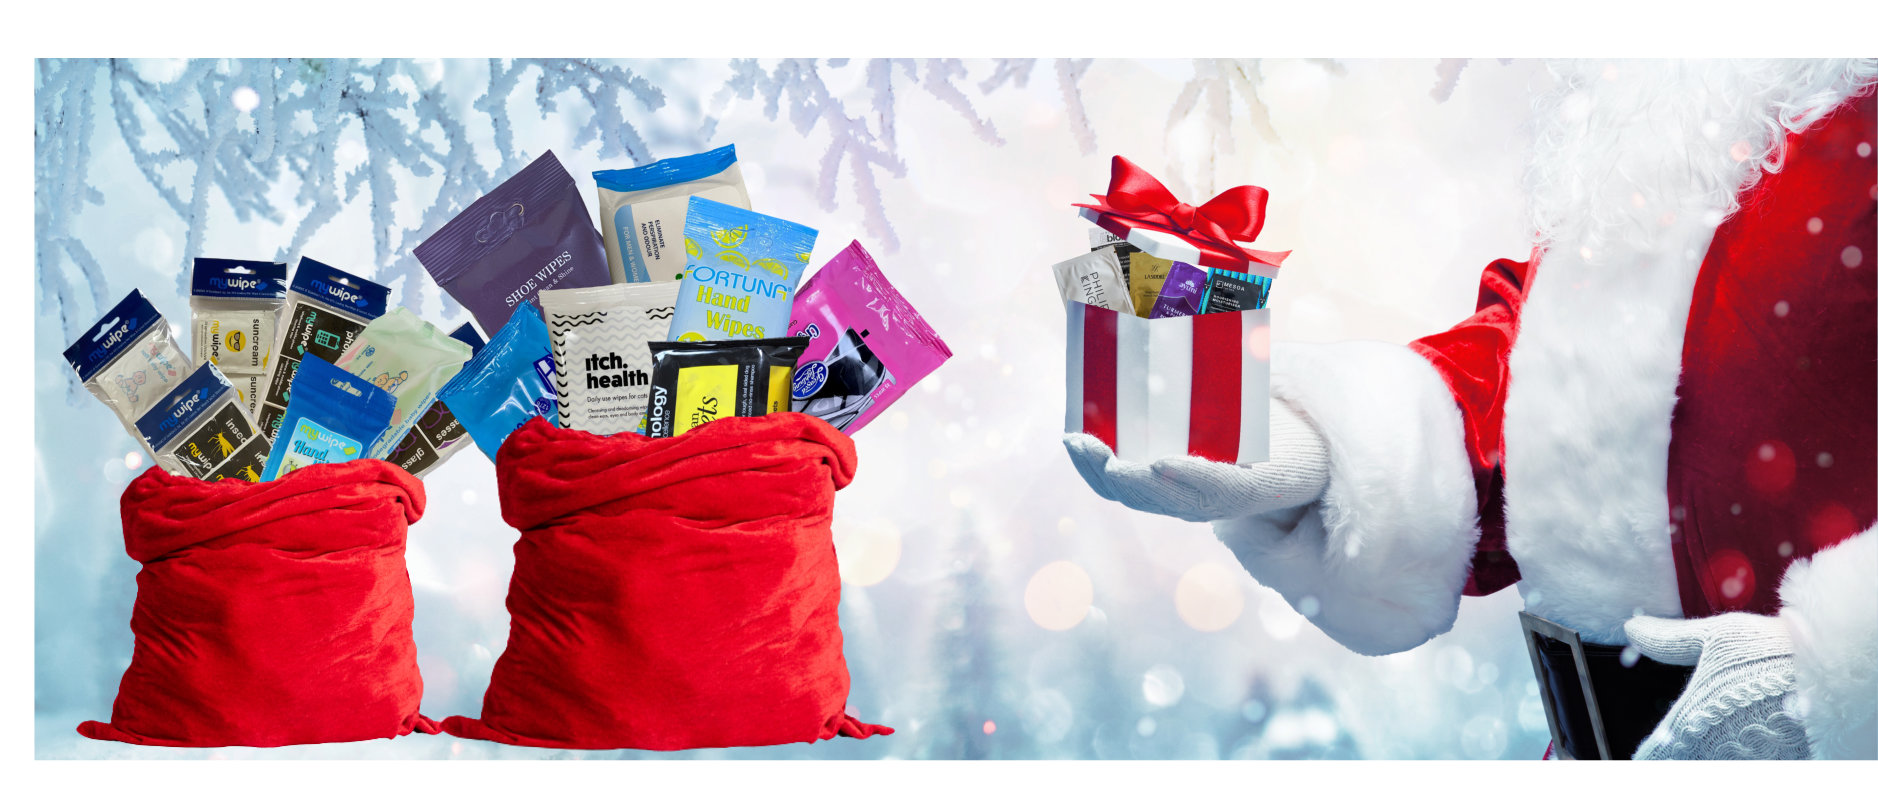 A picture of Santa delivering gifts and sacks full of wipe and sachet product gifts.